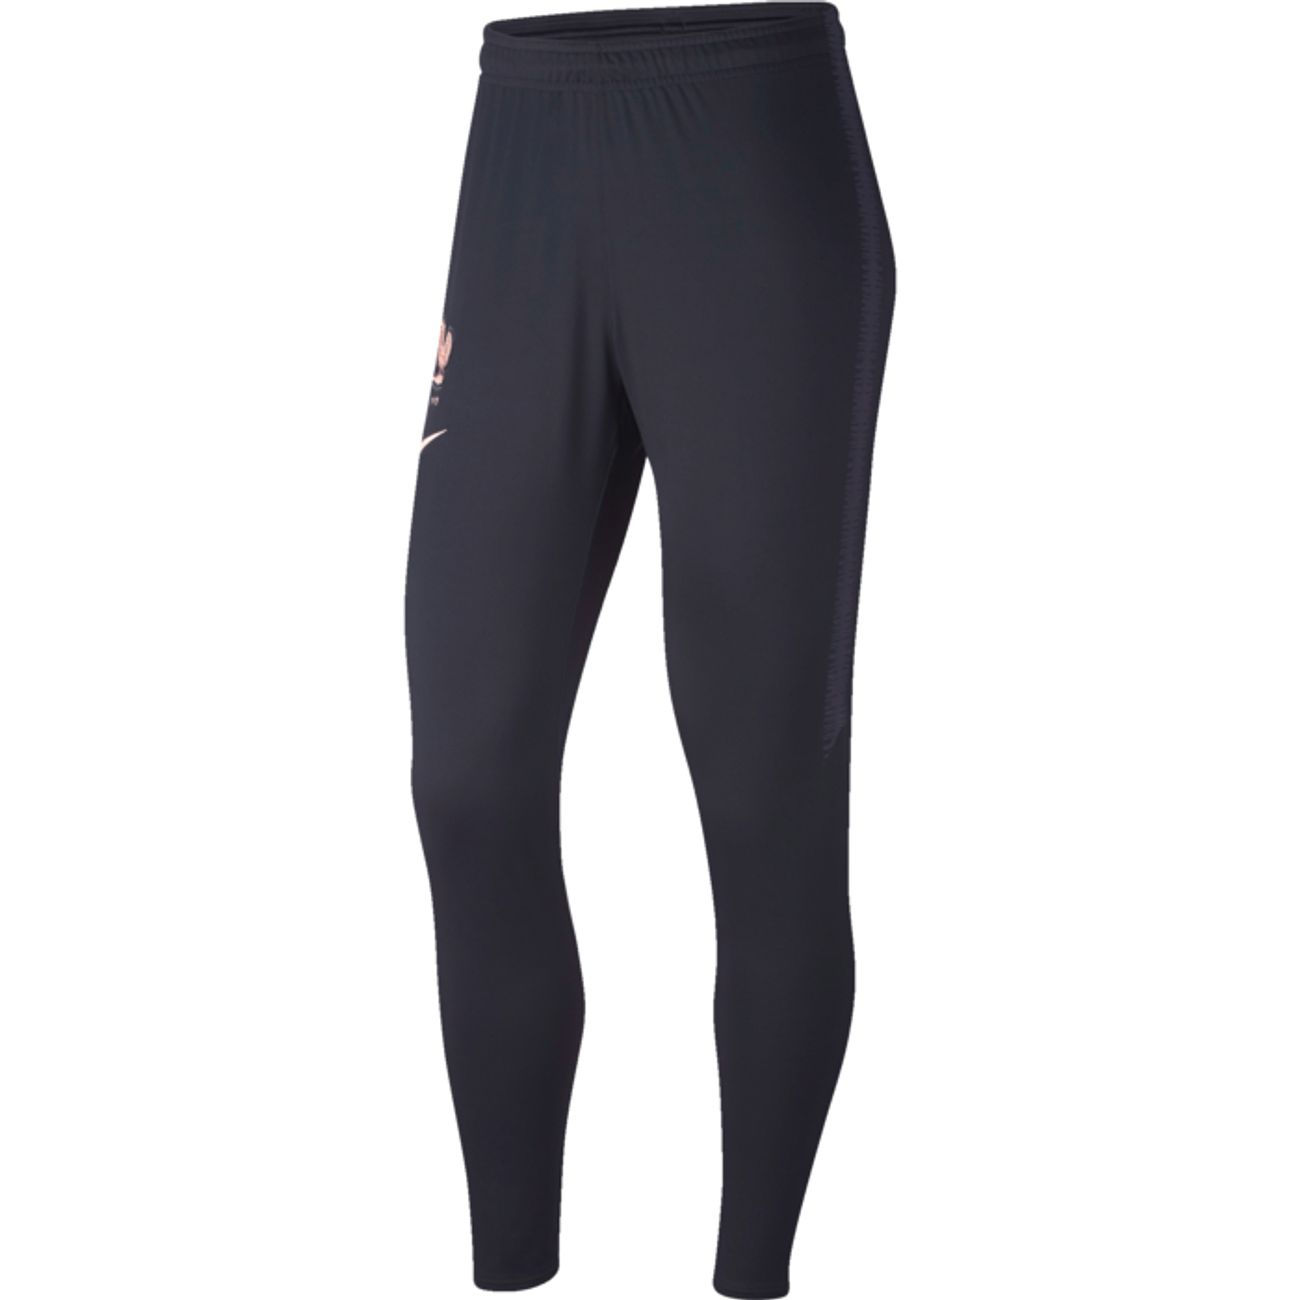 PANTALON Football femme NIKE FFF TECH 2019